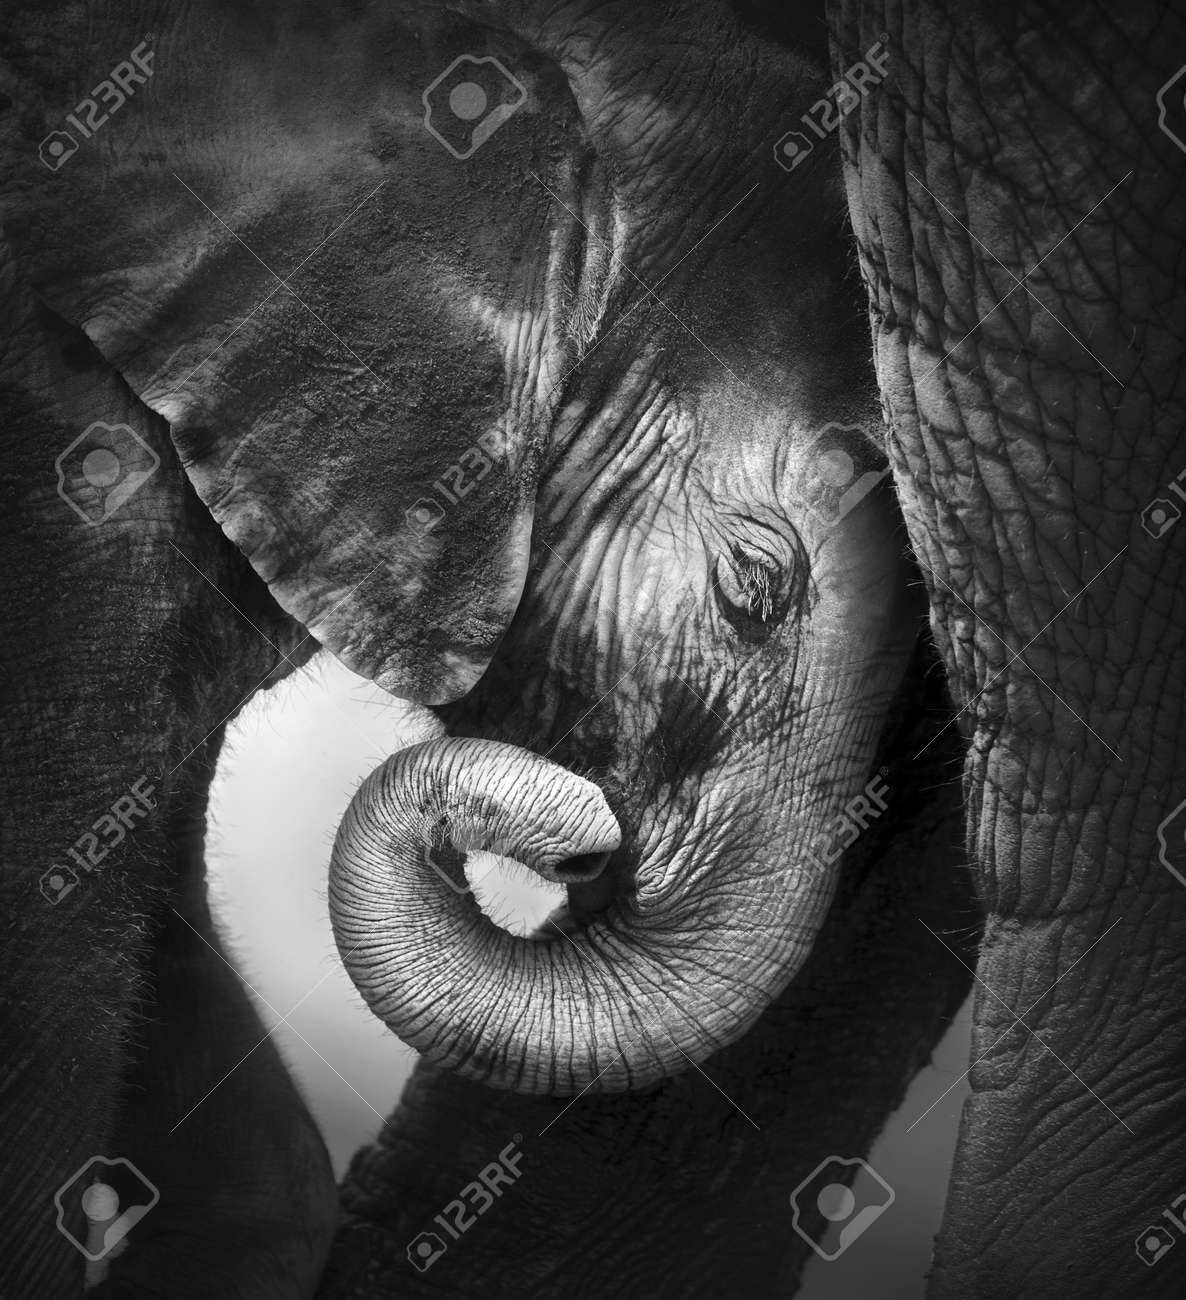 Fashion week White and black baby elephant photography for woman